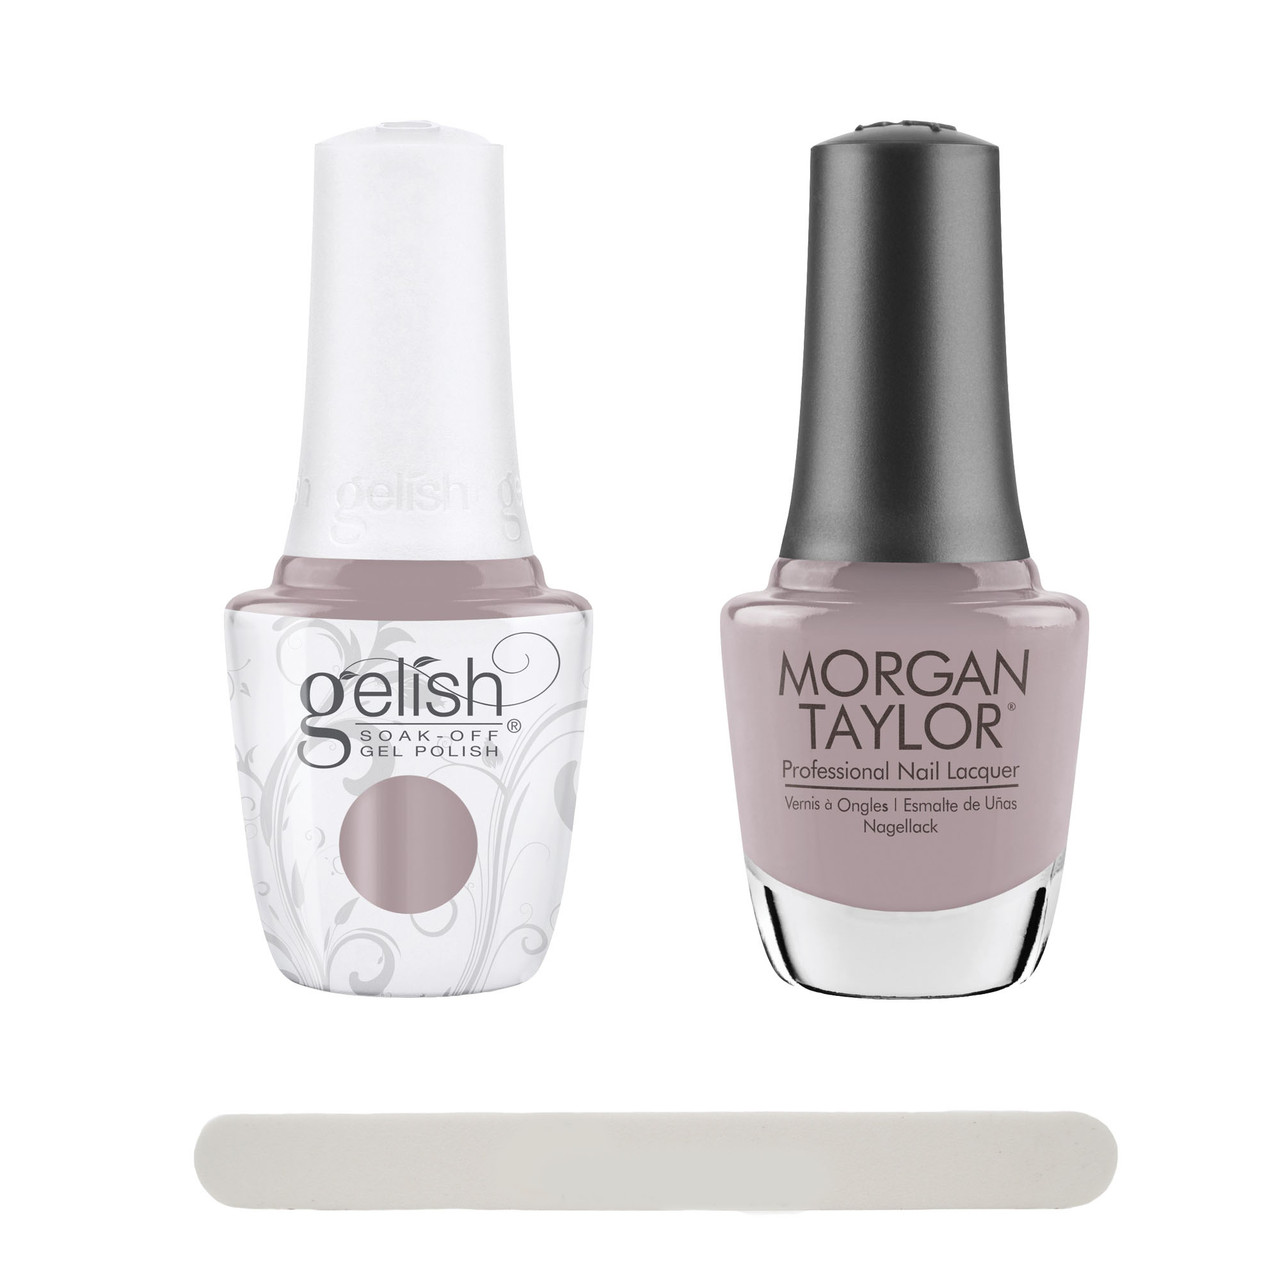 """Gelish """"Keep 'Em Guessing"""" 2 pc. Duo - Soak Off Gel Polish and Lacquer - Taupe Creme"""